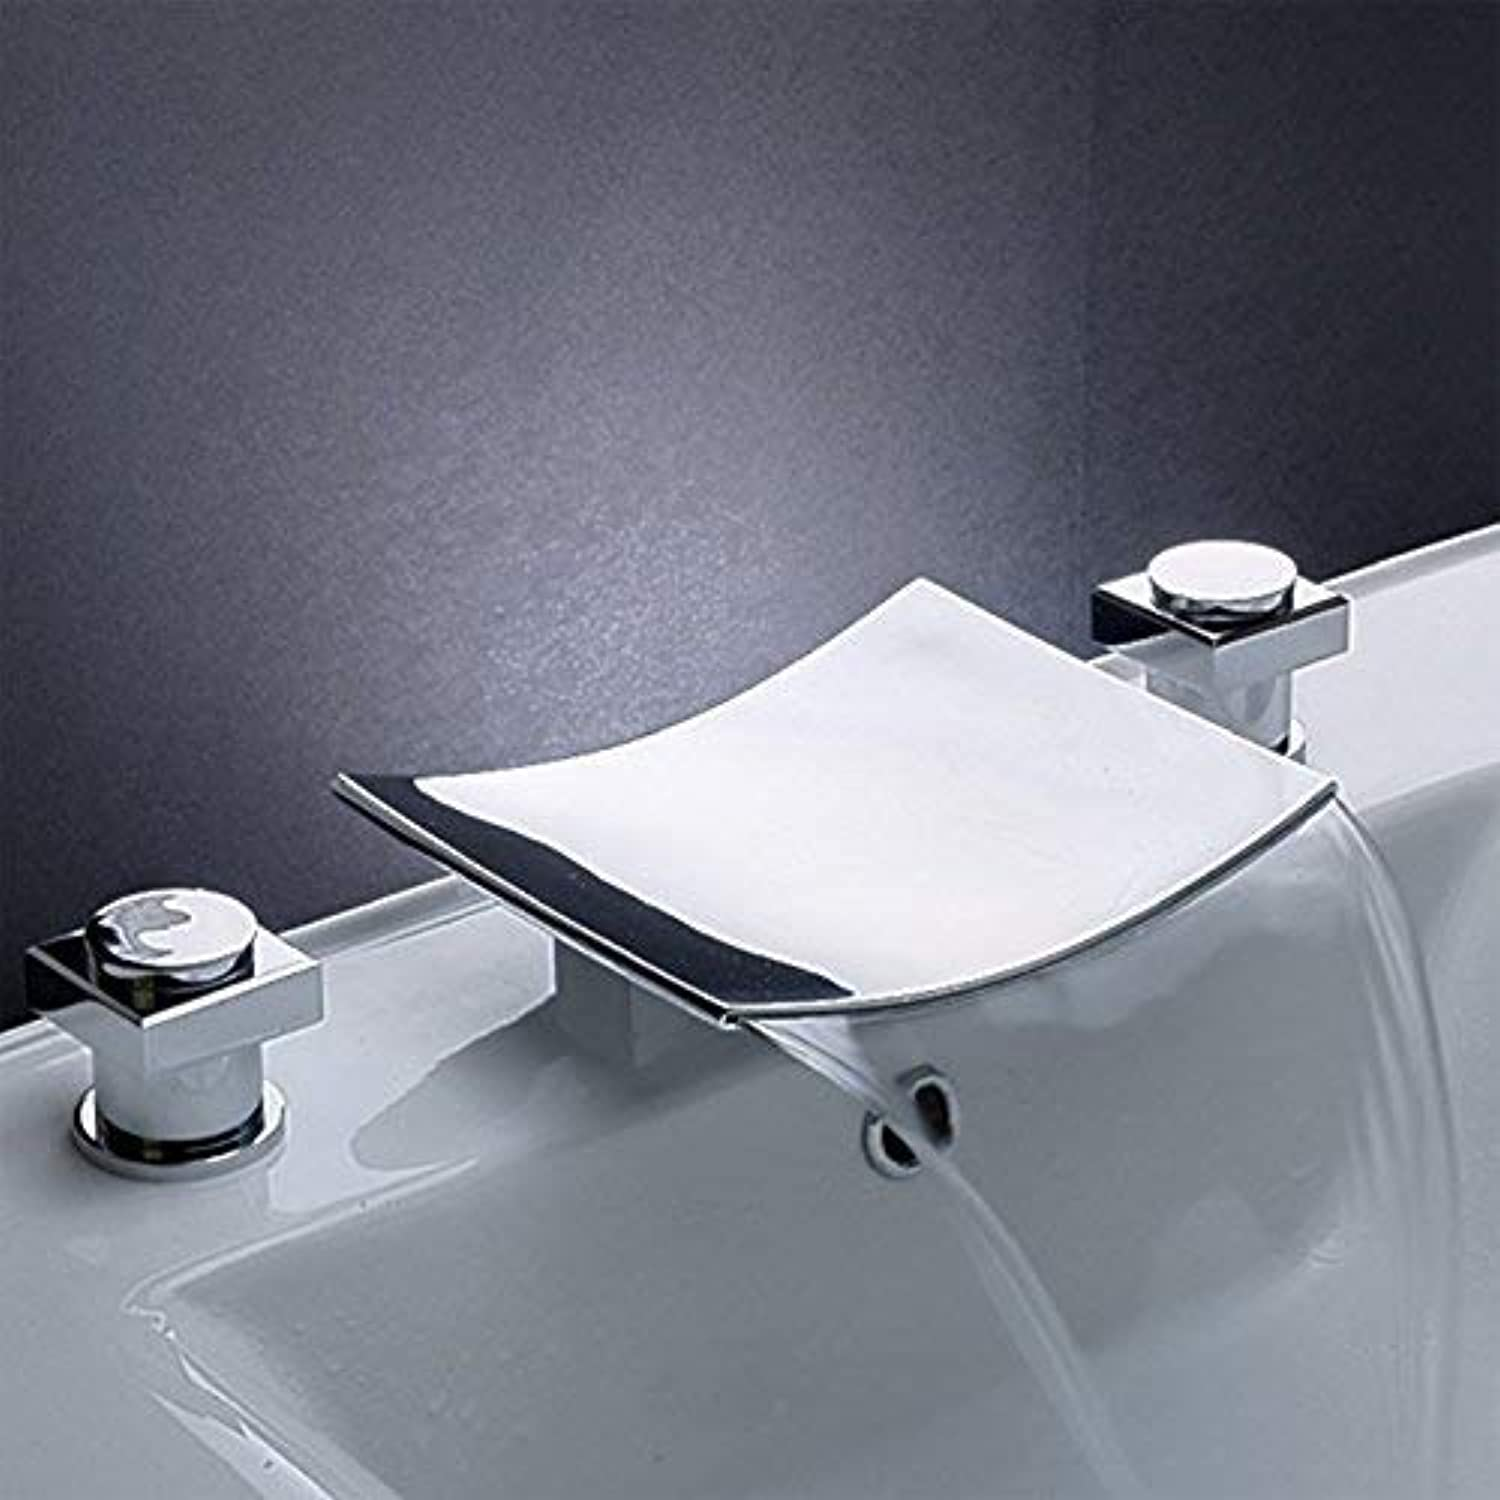 Oudan Waterfall Basin Full of Hot and Cold Taps Copper Toilet Basin Double Washbasin Three Holes to Separate Three-Piece, Led Ax Three-Piece (color   Curved Three-piece - Without Led, Size   -)